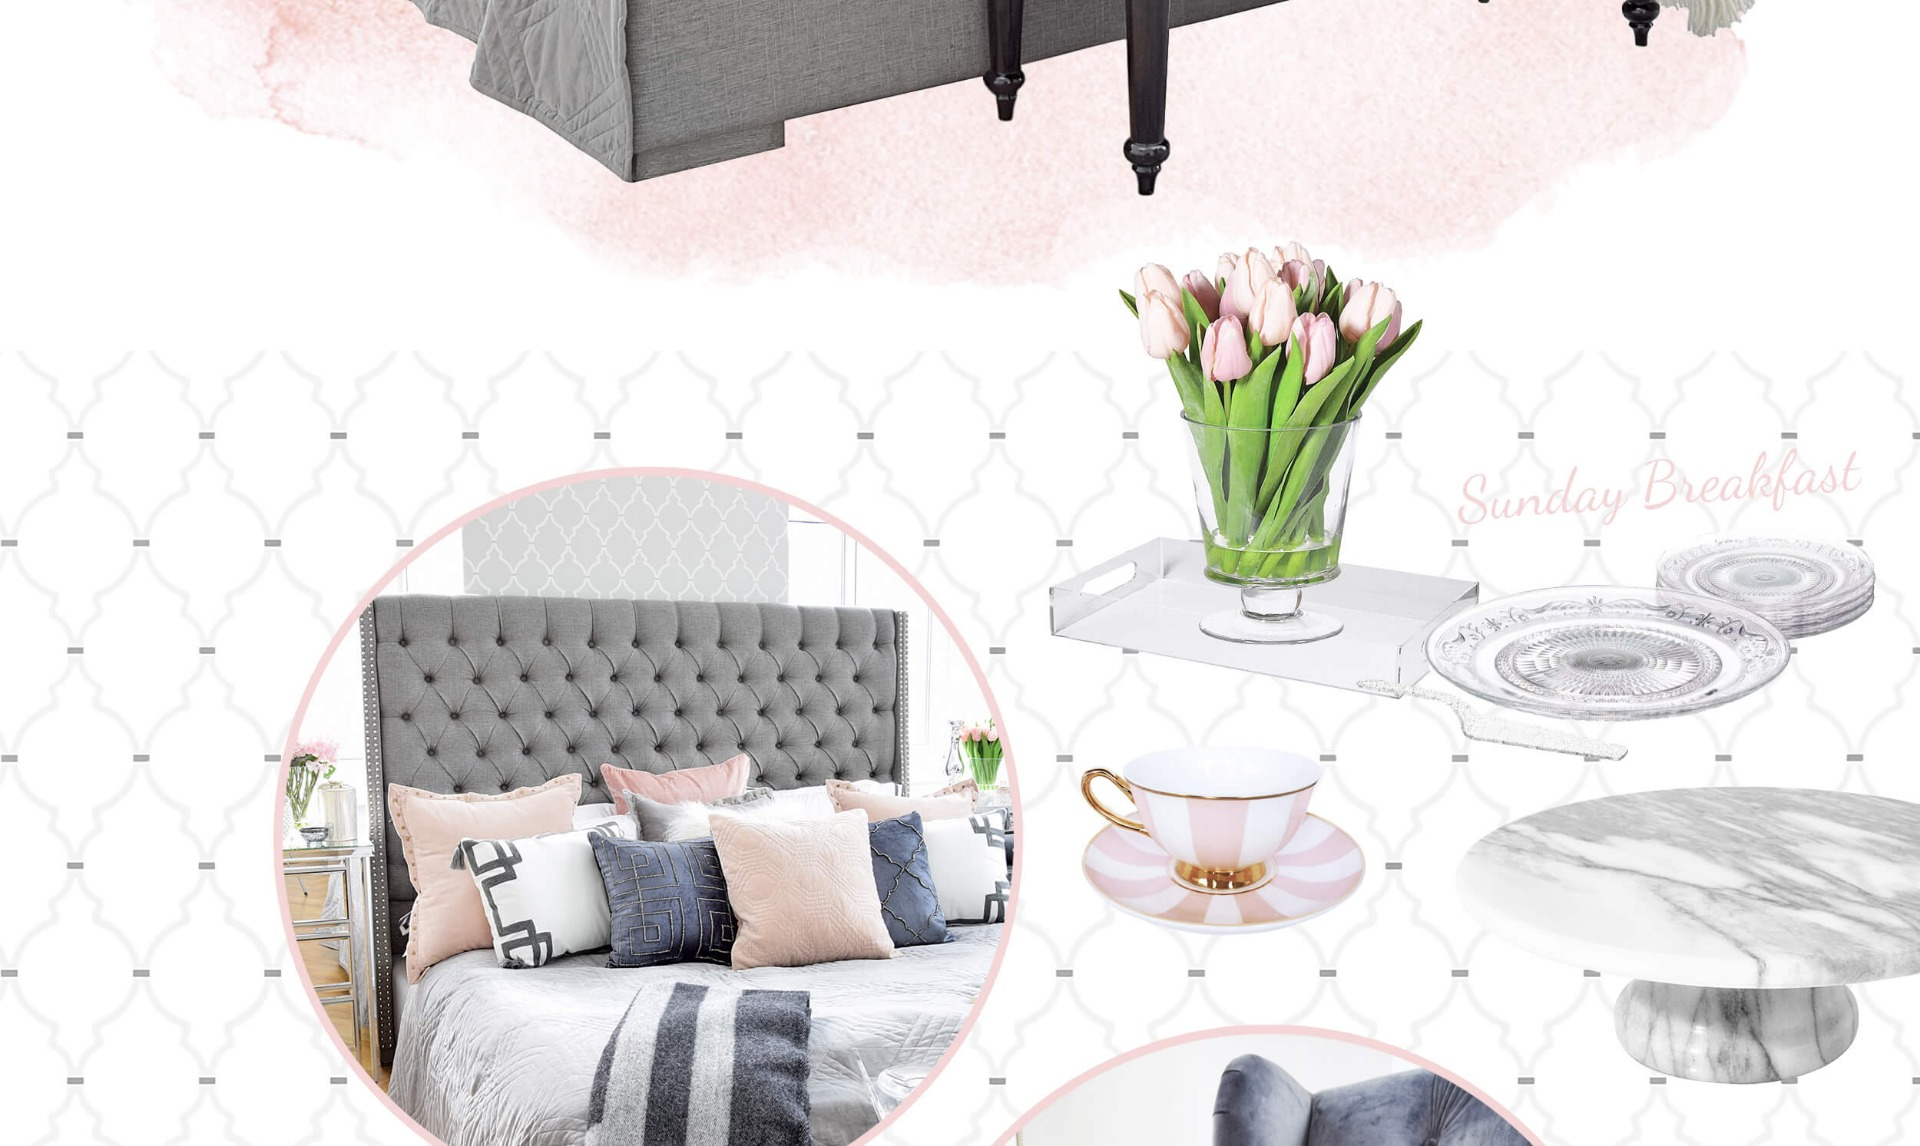 Master Bedroom - Schlafzimmer in Grau & Rosa - Looks